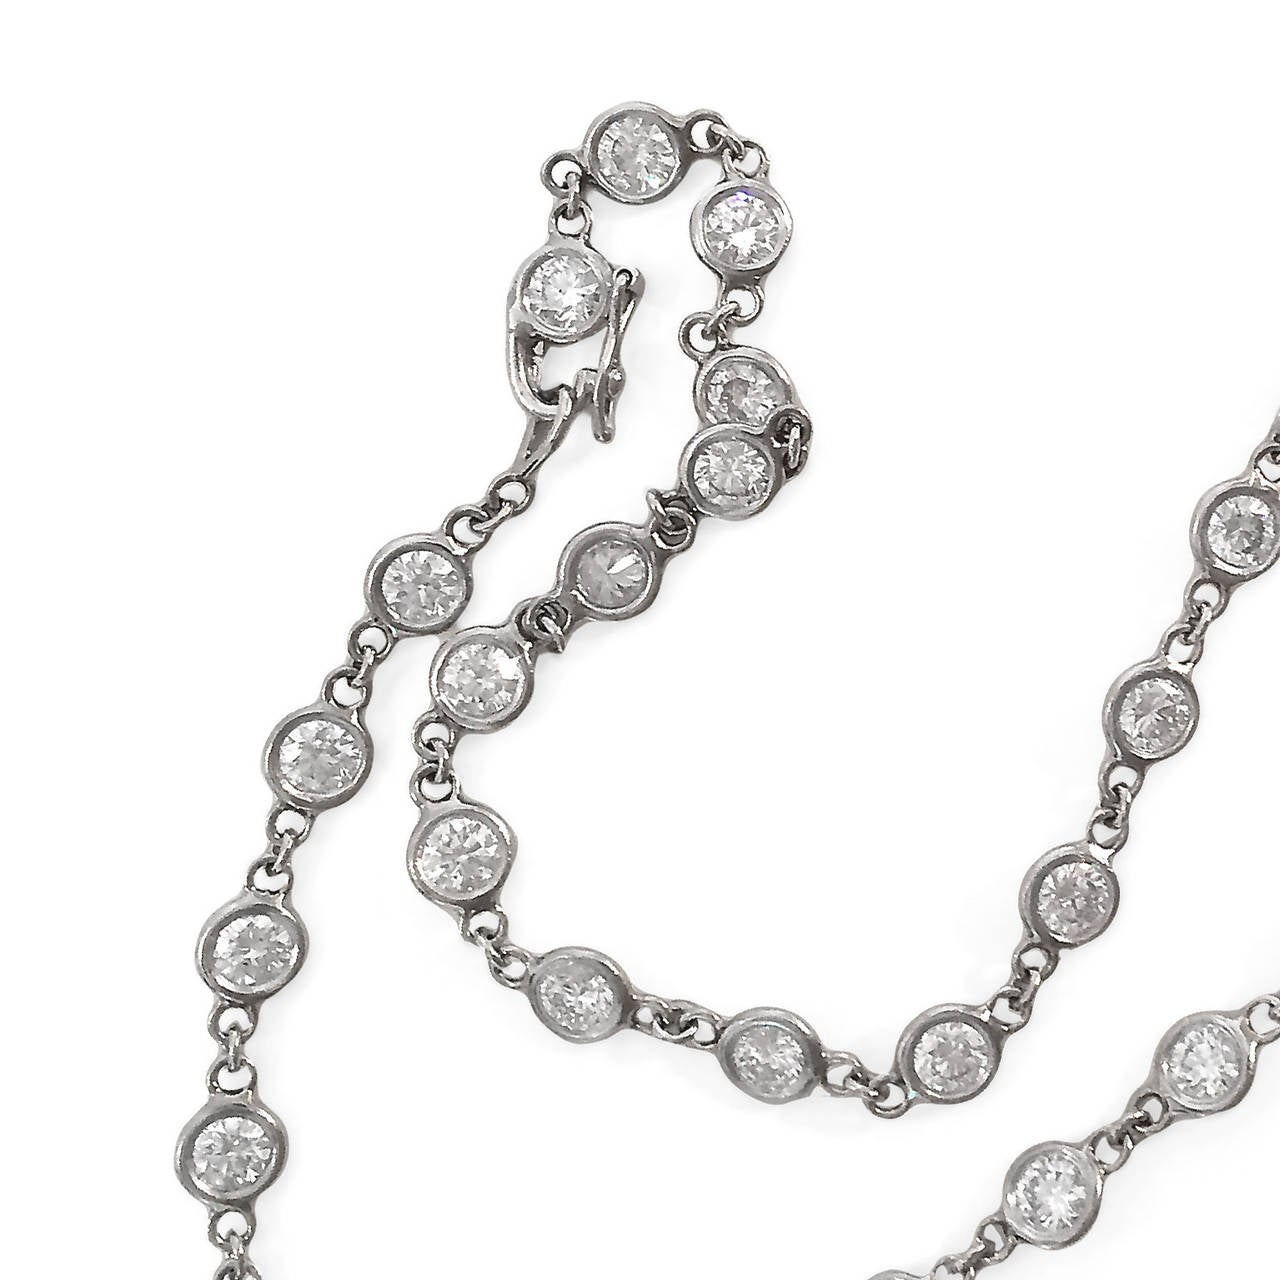 Diamond Platinum 7.77 Carat Necklace For Sale at 1stdibs